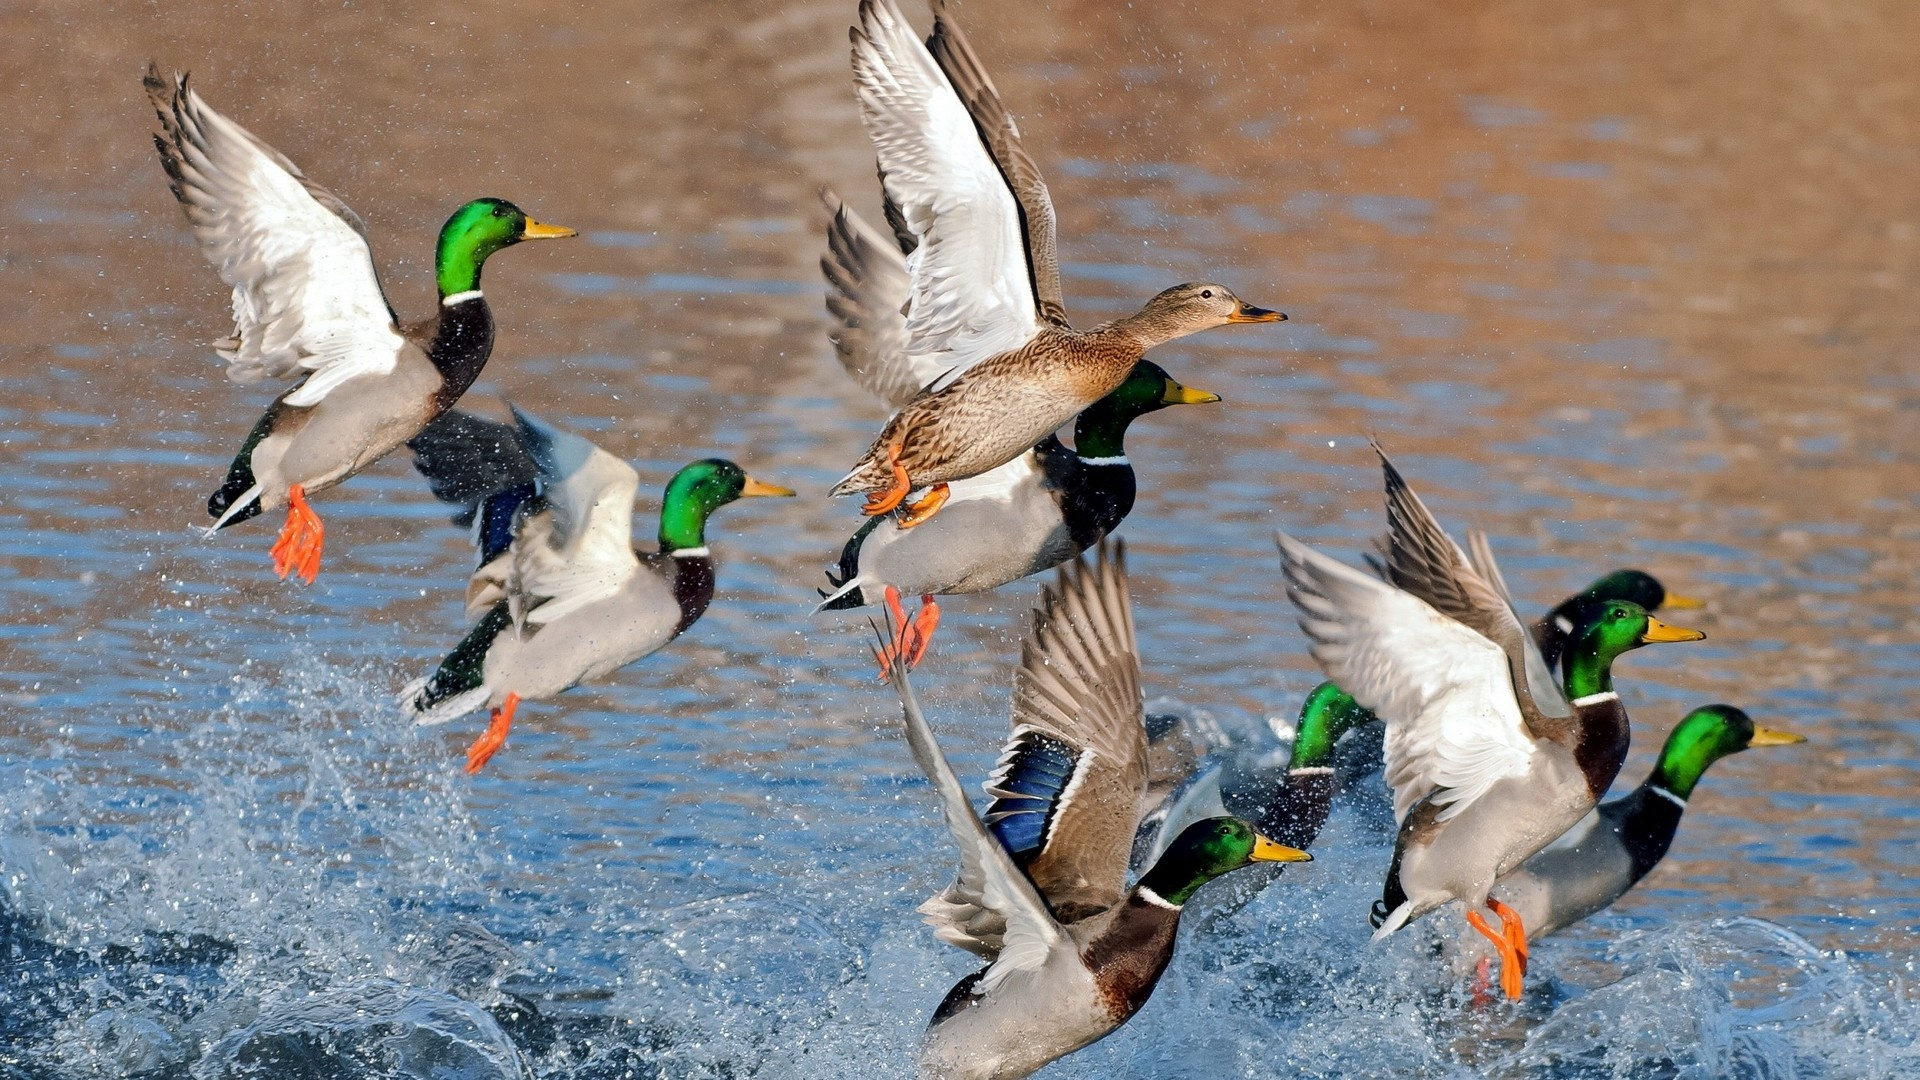 Ducks Flying Over Water | 1920 x 1080 | Download | Close